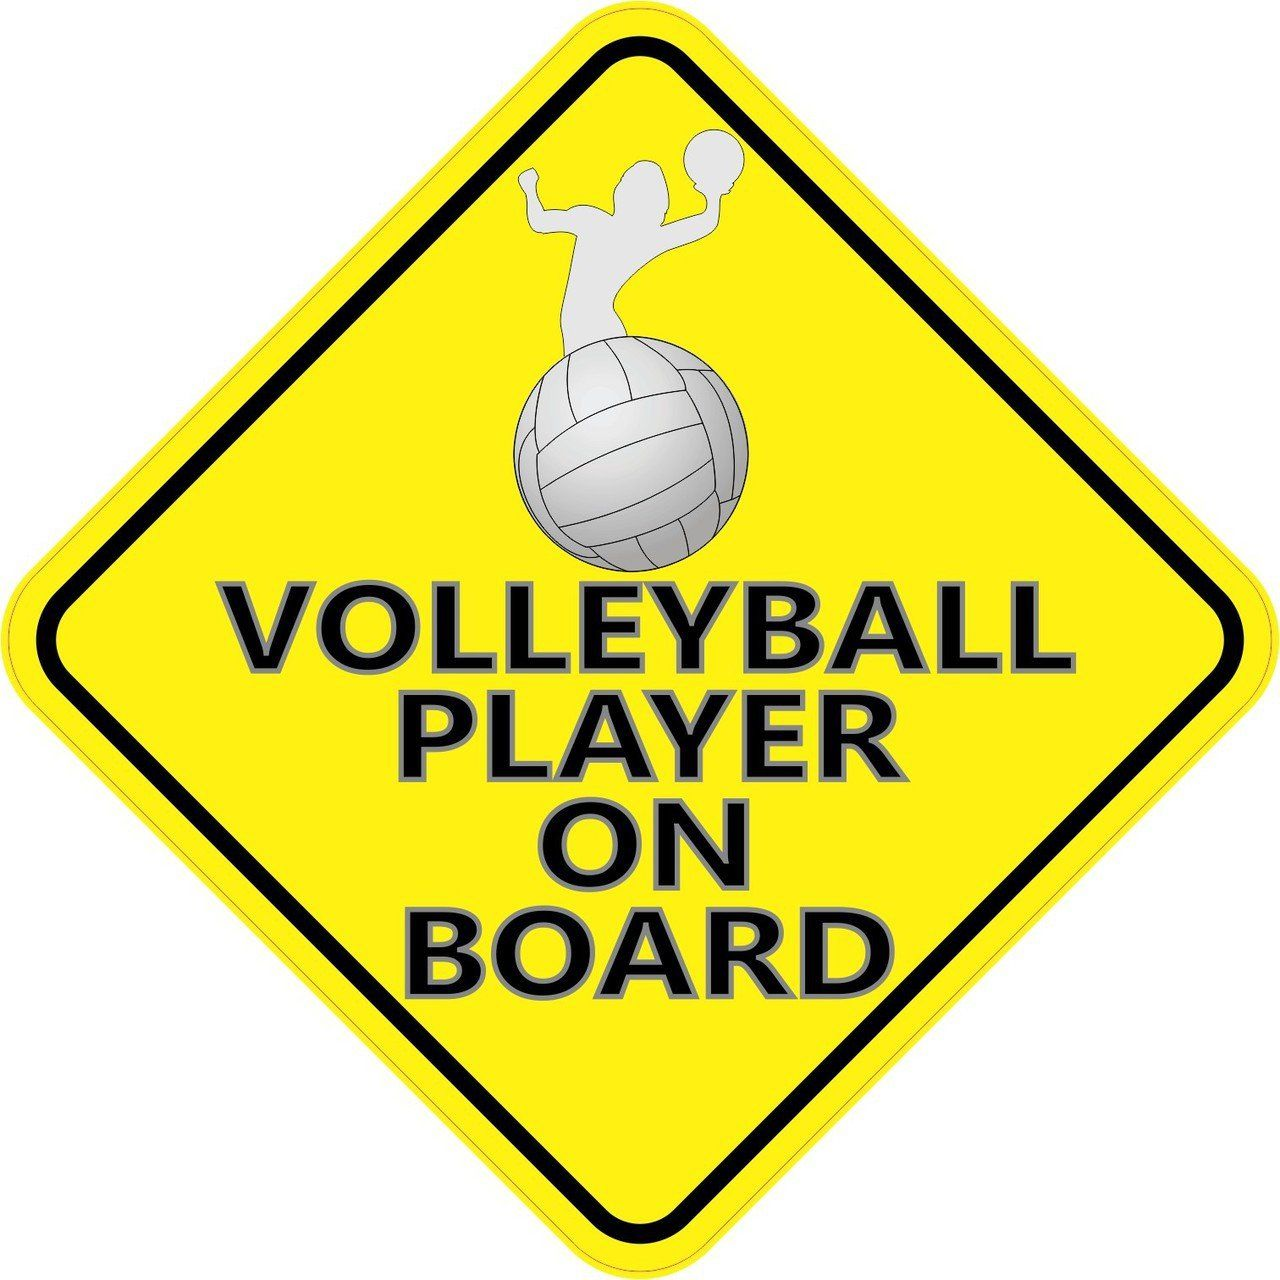 5in X 5in Volleyball Player On Board Sticker Vinyl Bumper Stickers Volleyball Volleyball Players [ 1280 x 1280 Pixel ]